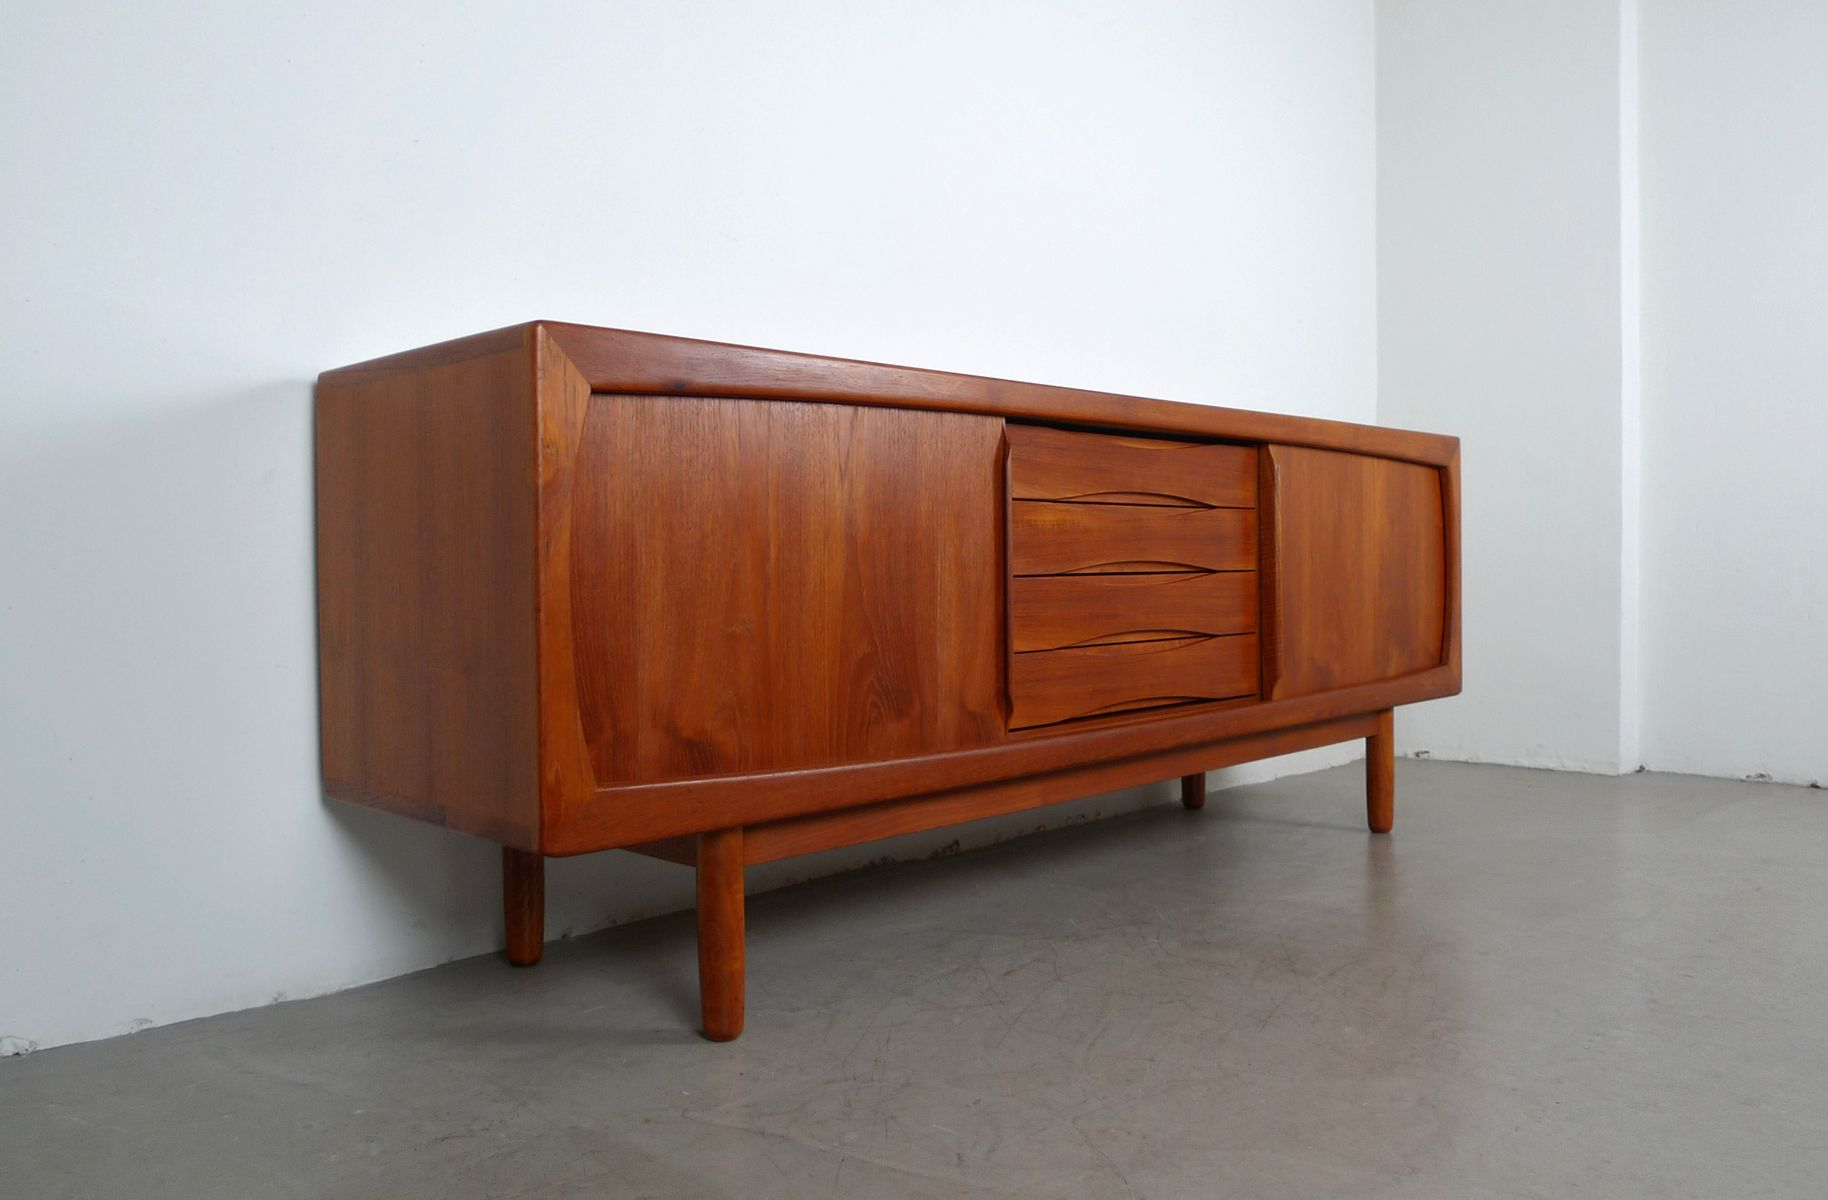 teak sideboard mit schiebet ren und schubladen von dyrlund. Black Bedroom Furniture Sets. Home Design Ideas